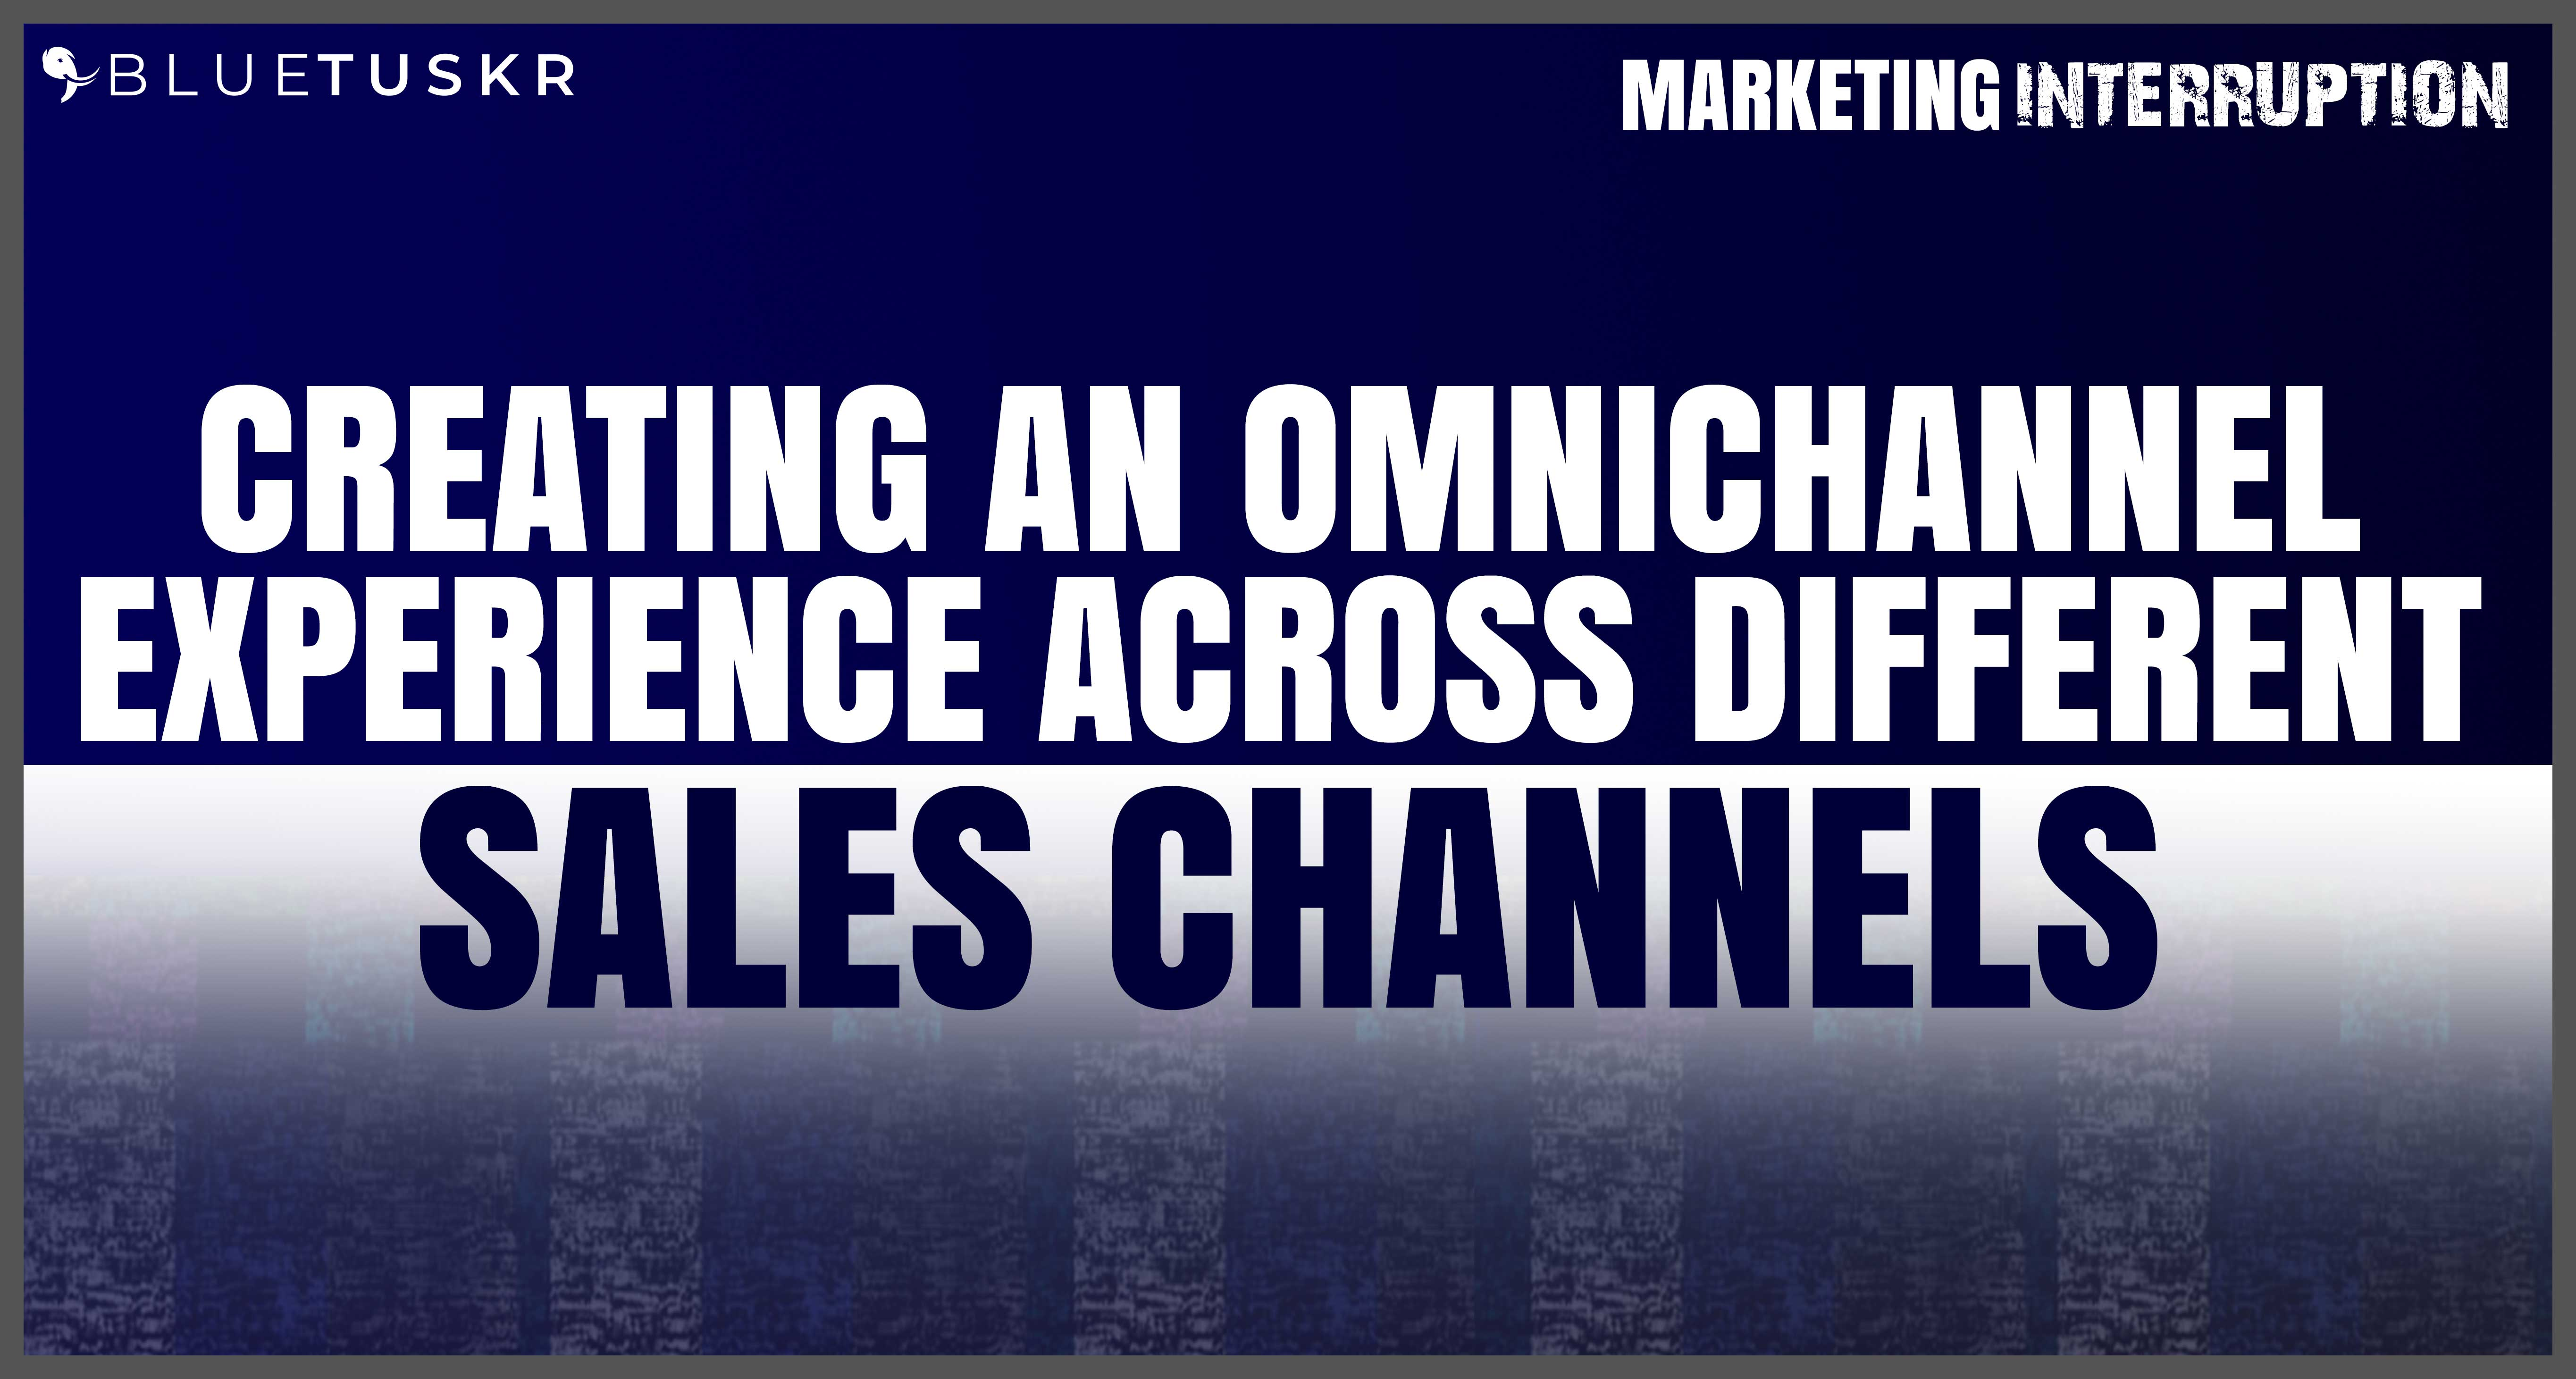 Creating an Omnichannel Experience Across Different Sales Channels